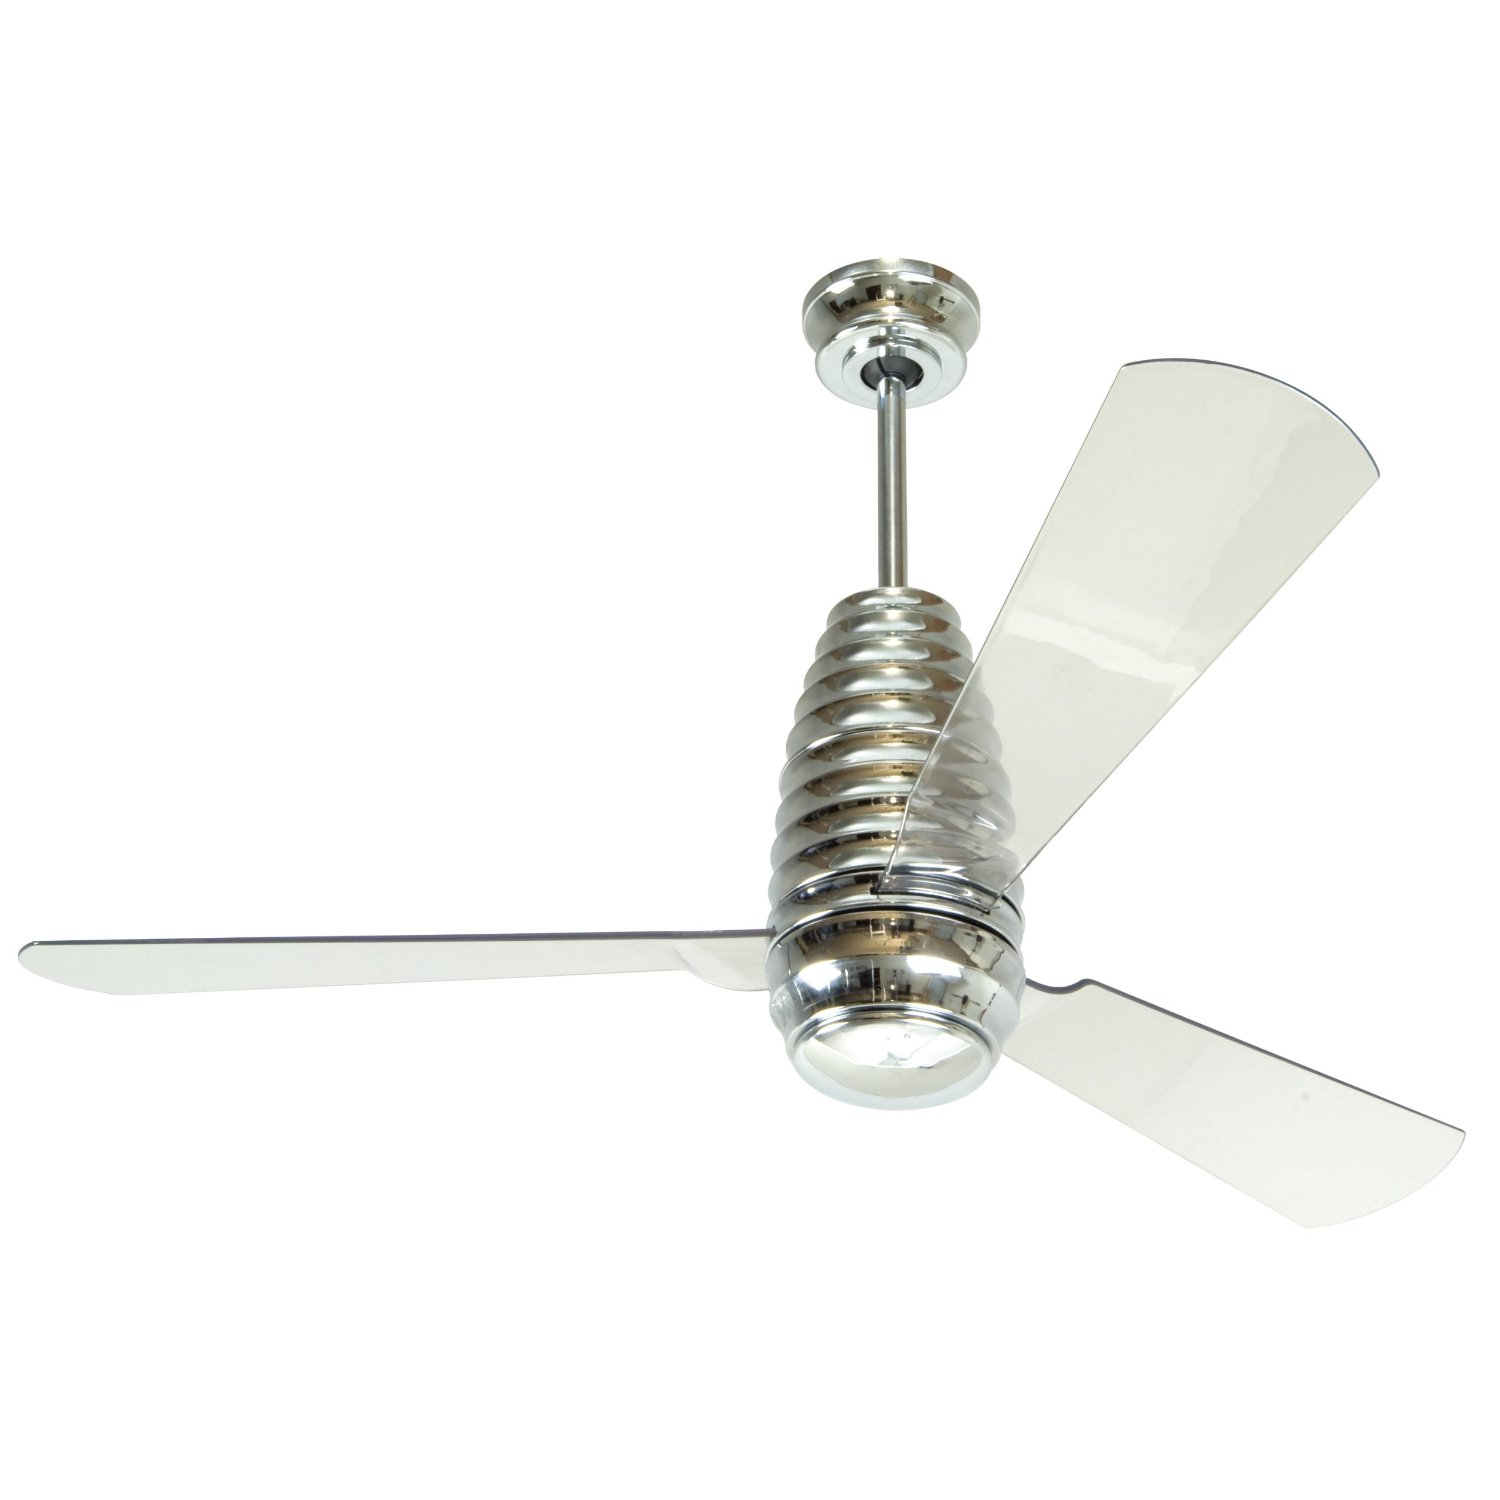 acrylic ceiling fan photo - 2